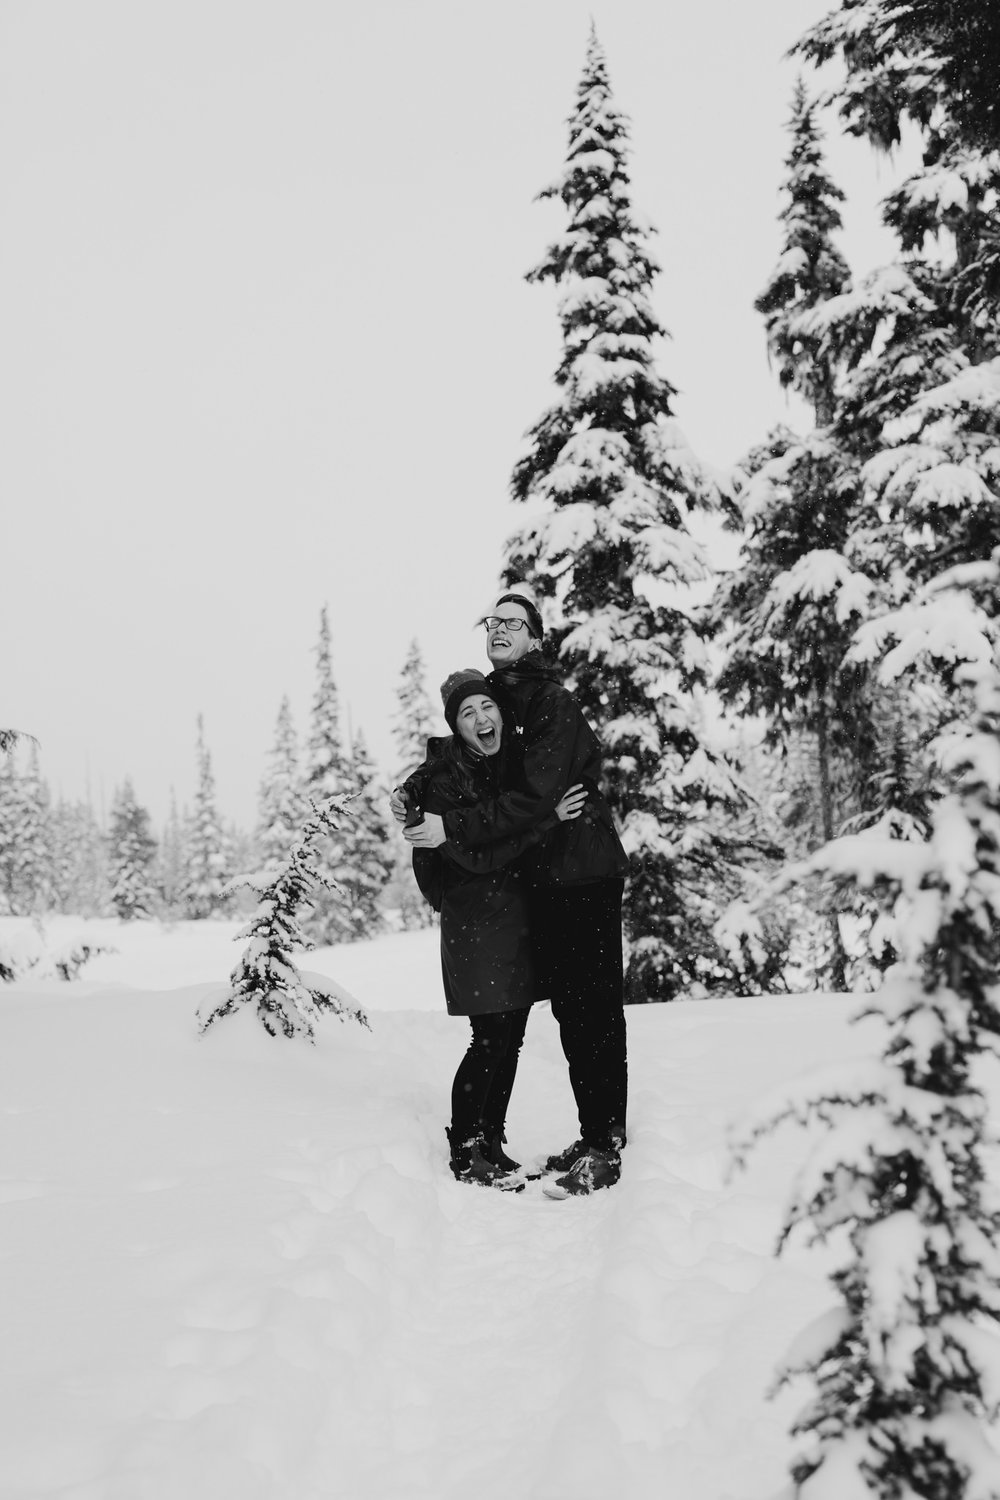 greg+jade-mount-washington-winter-engagement066.JPG